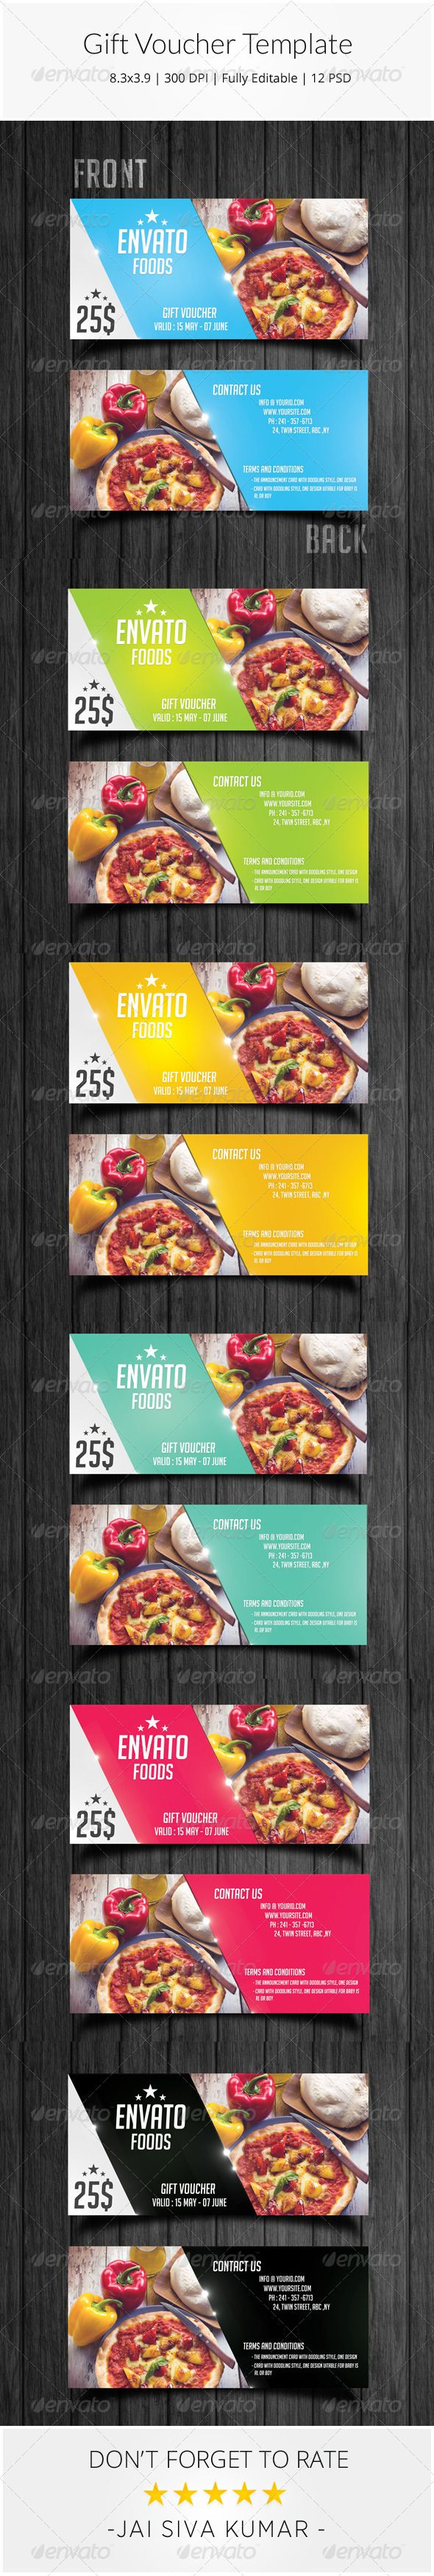 Free Meal Ticket Template 19 Best Voucher Images On Pinterest  Gift Voucher Design Gift .